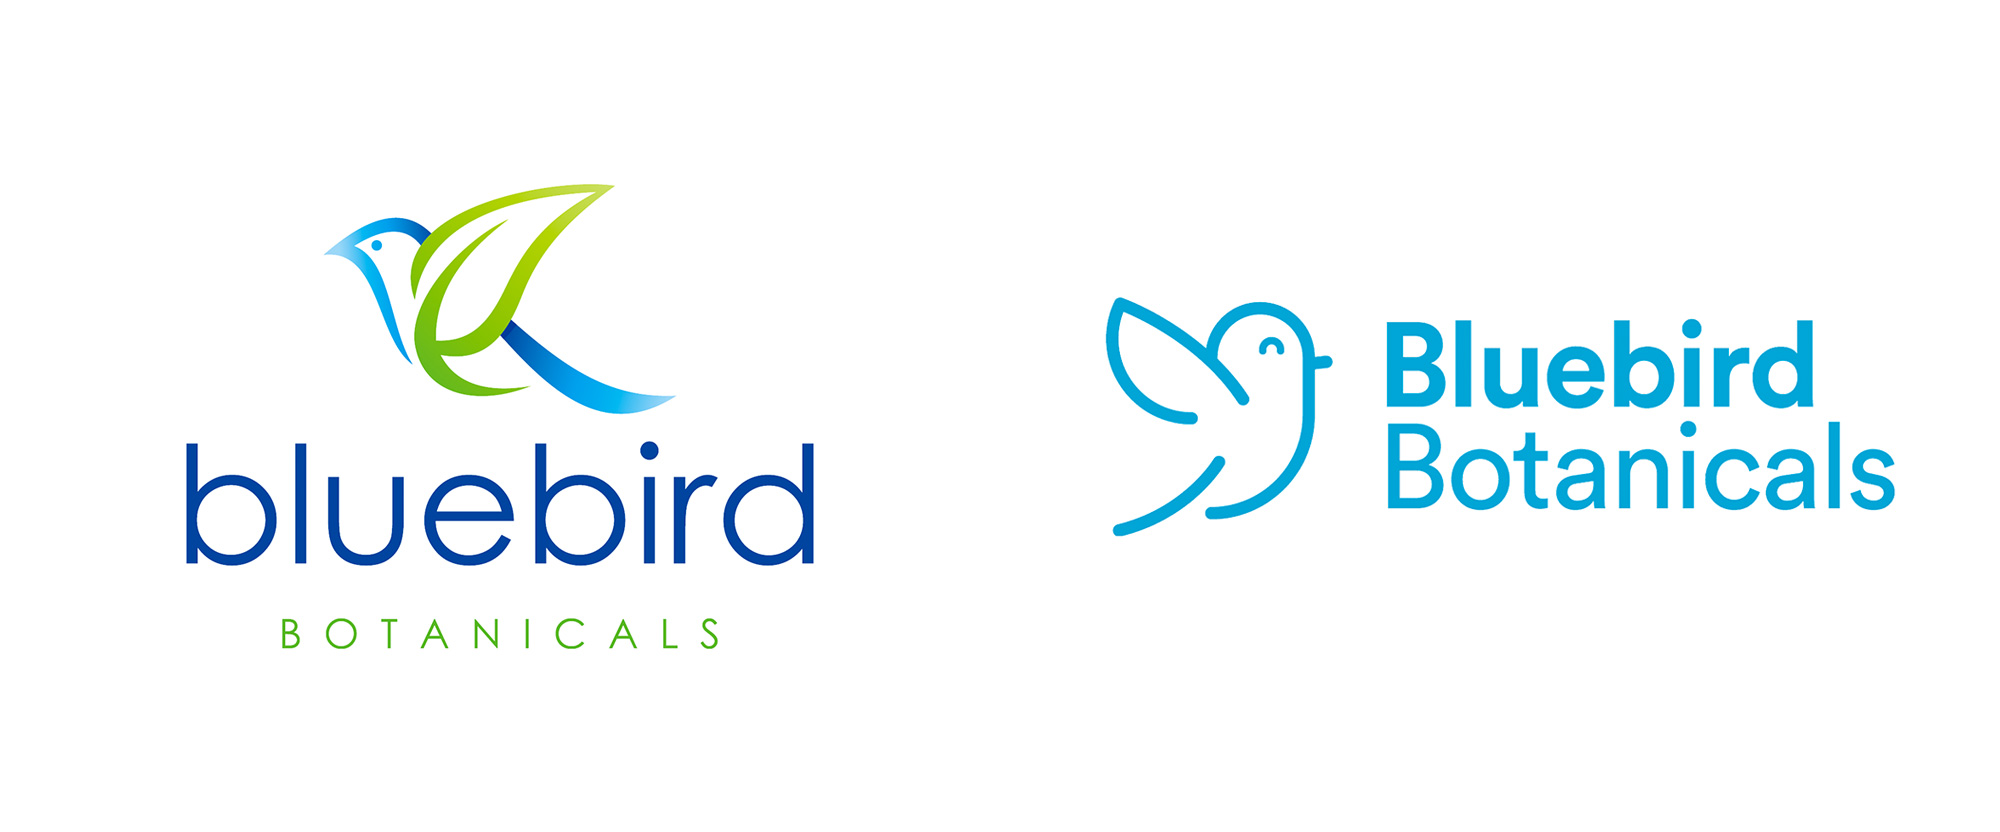 New Logo and Packaging for Bluebird Botanicals by Illustria